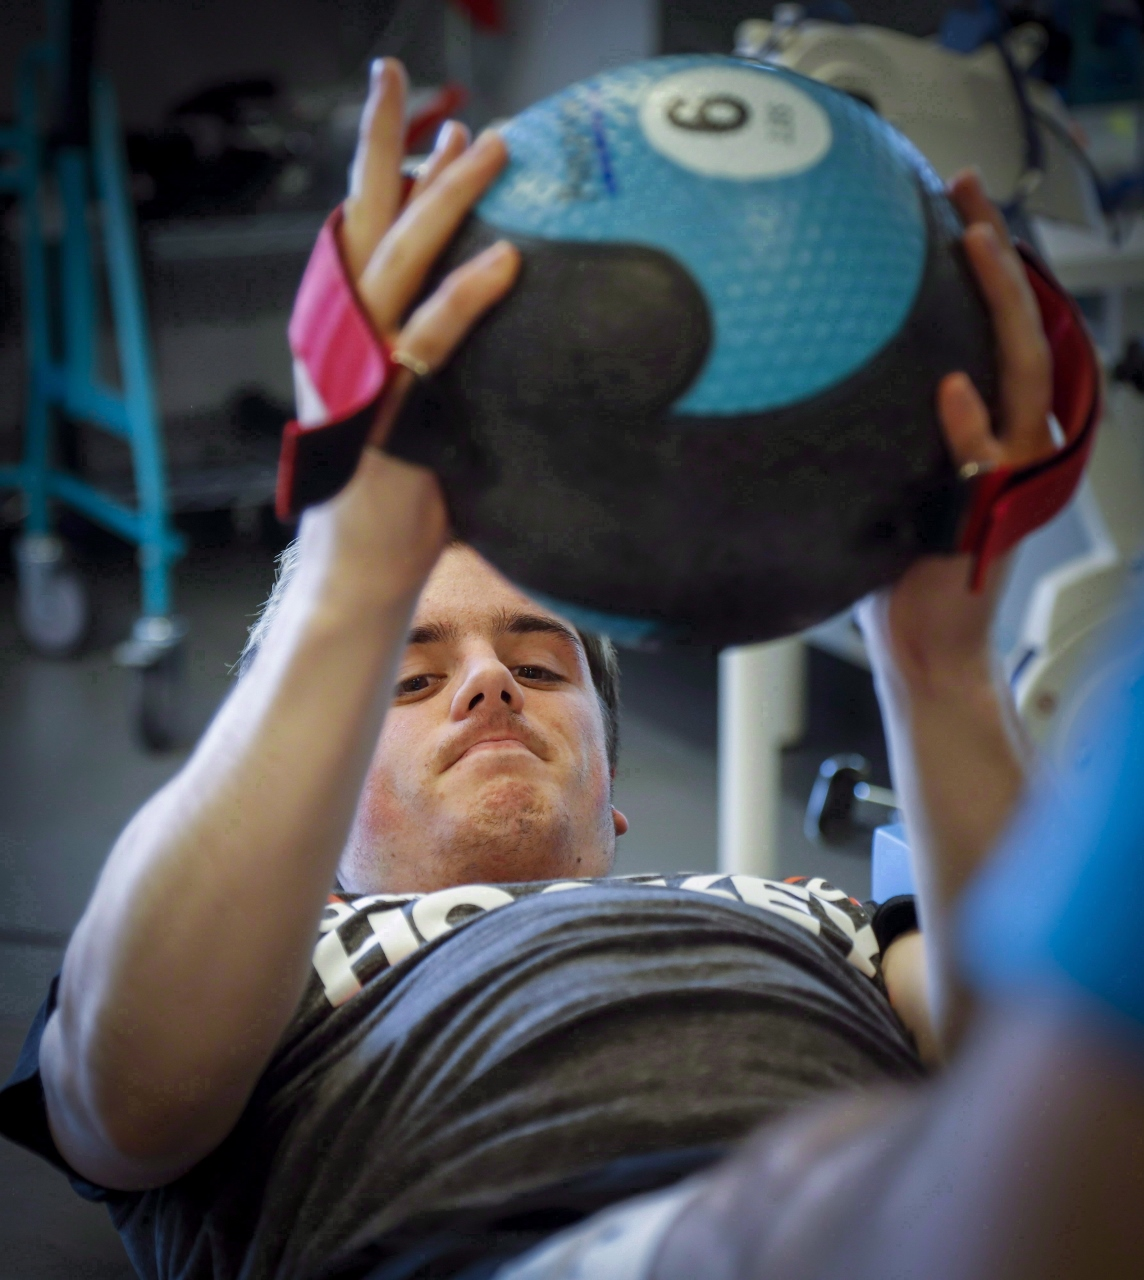 Photo of bus crash survivor Ryan Straschnitzki at a physiotherapy session